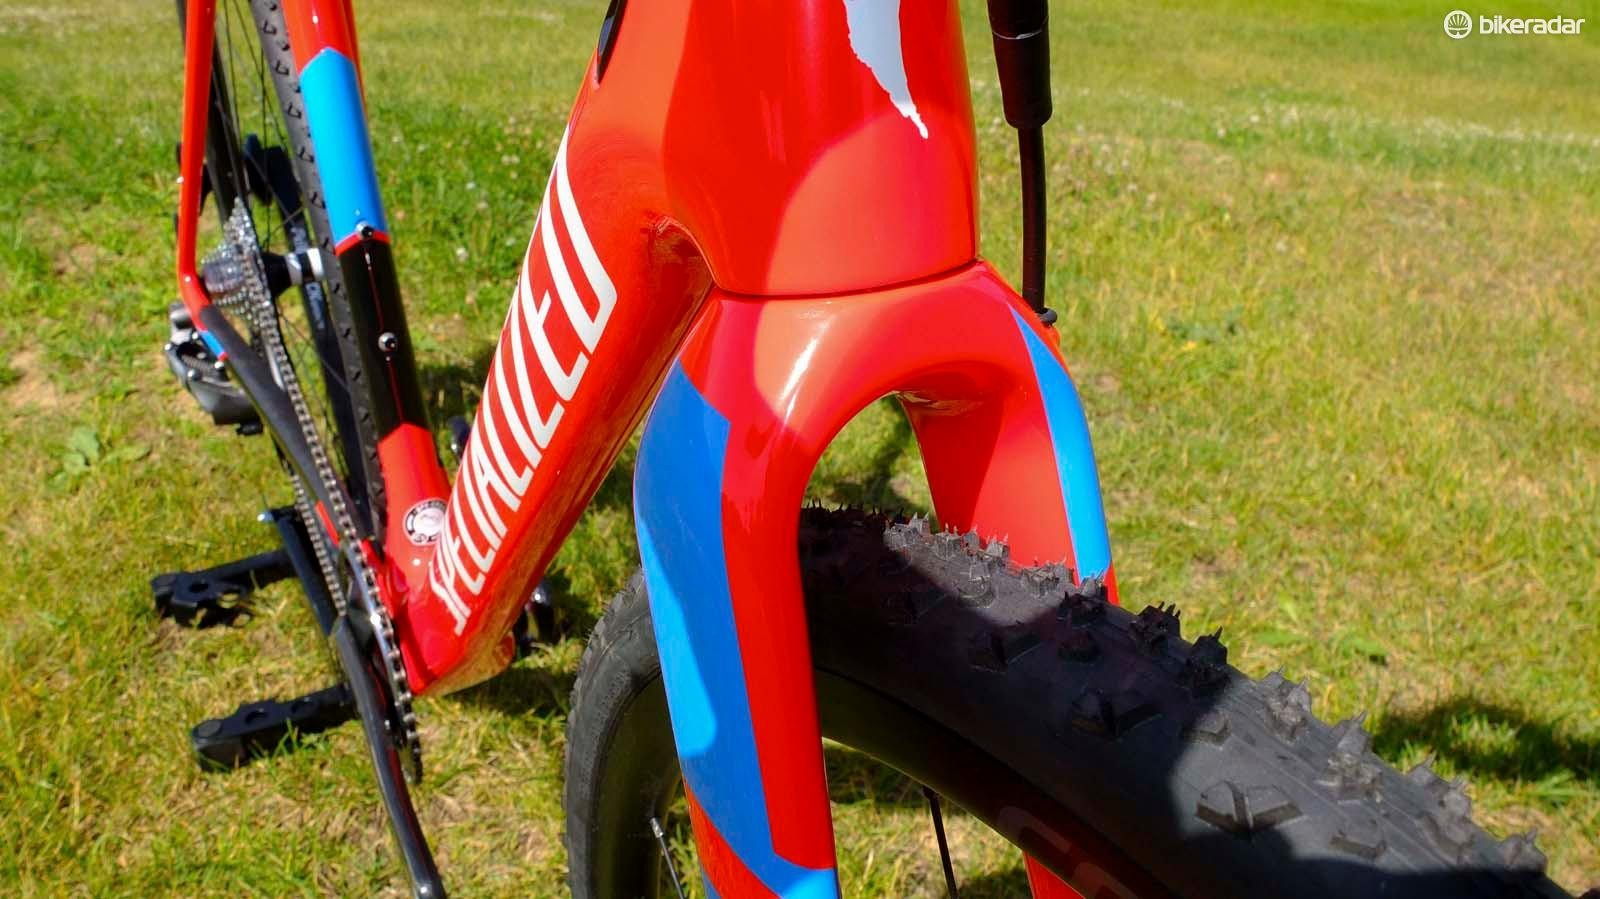 The down tube has a slightly triangular profile that should collect less mud, and feels easy to grip when picking the bike up